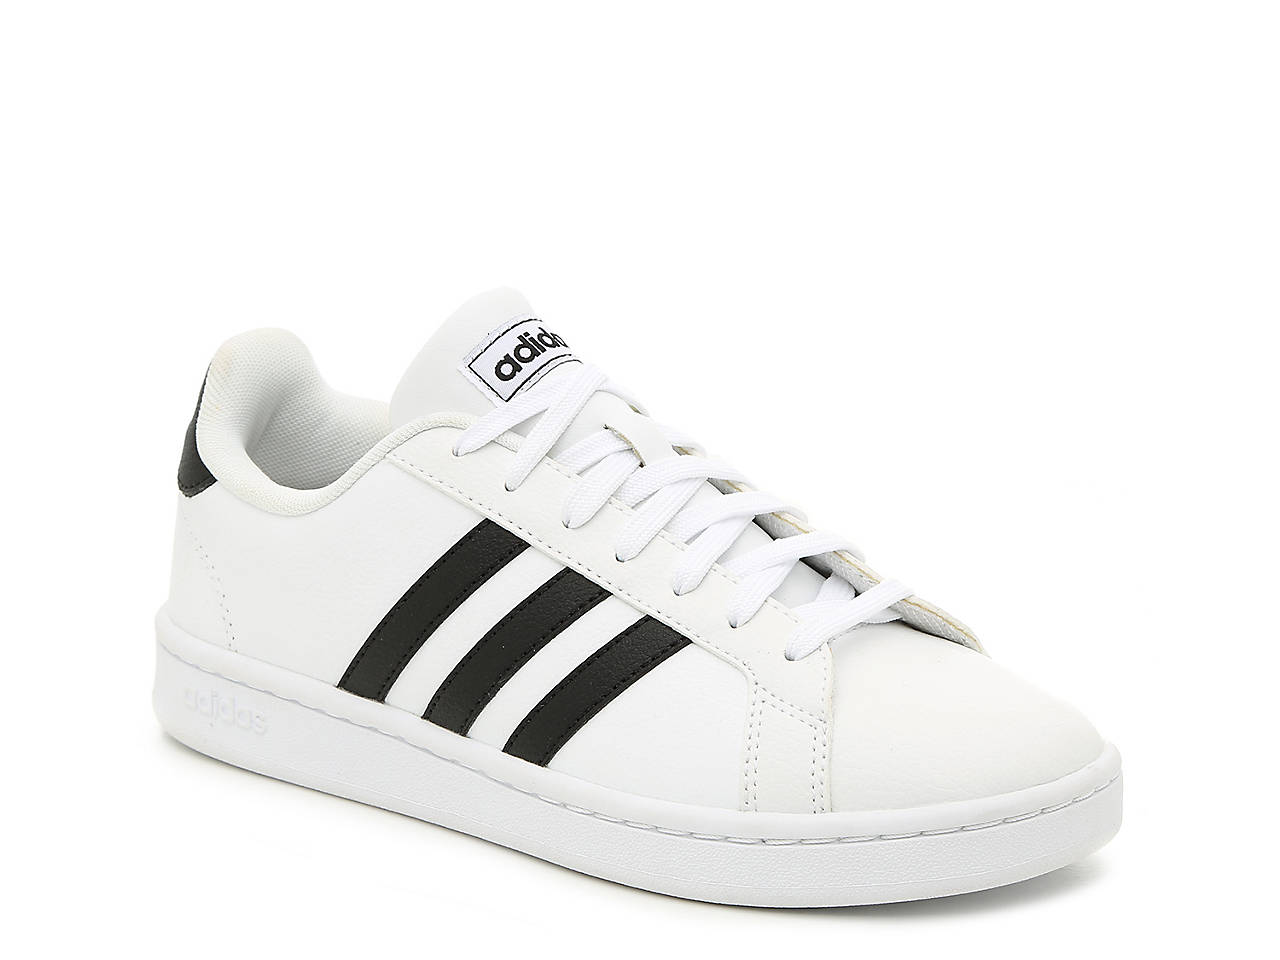 best website f56a6 c8247 adidas Grand Court Sneaker - Women s Women s Shoes   DSW